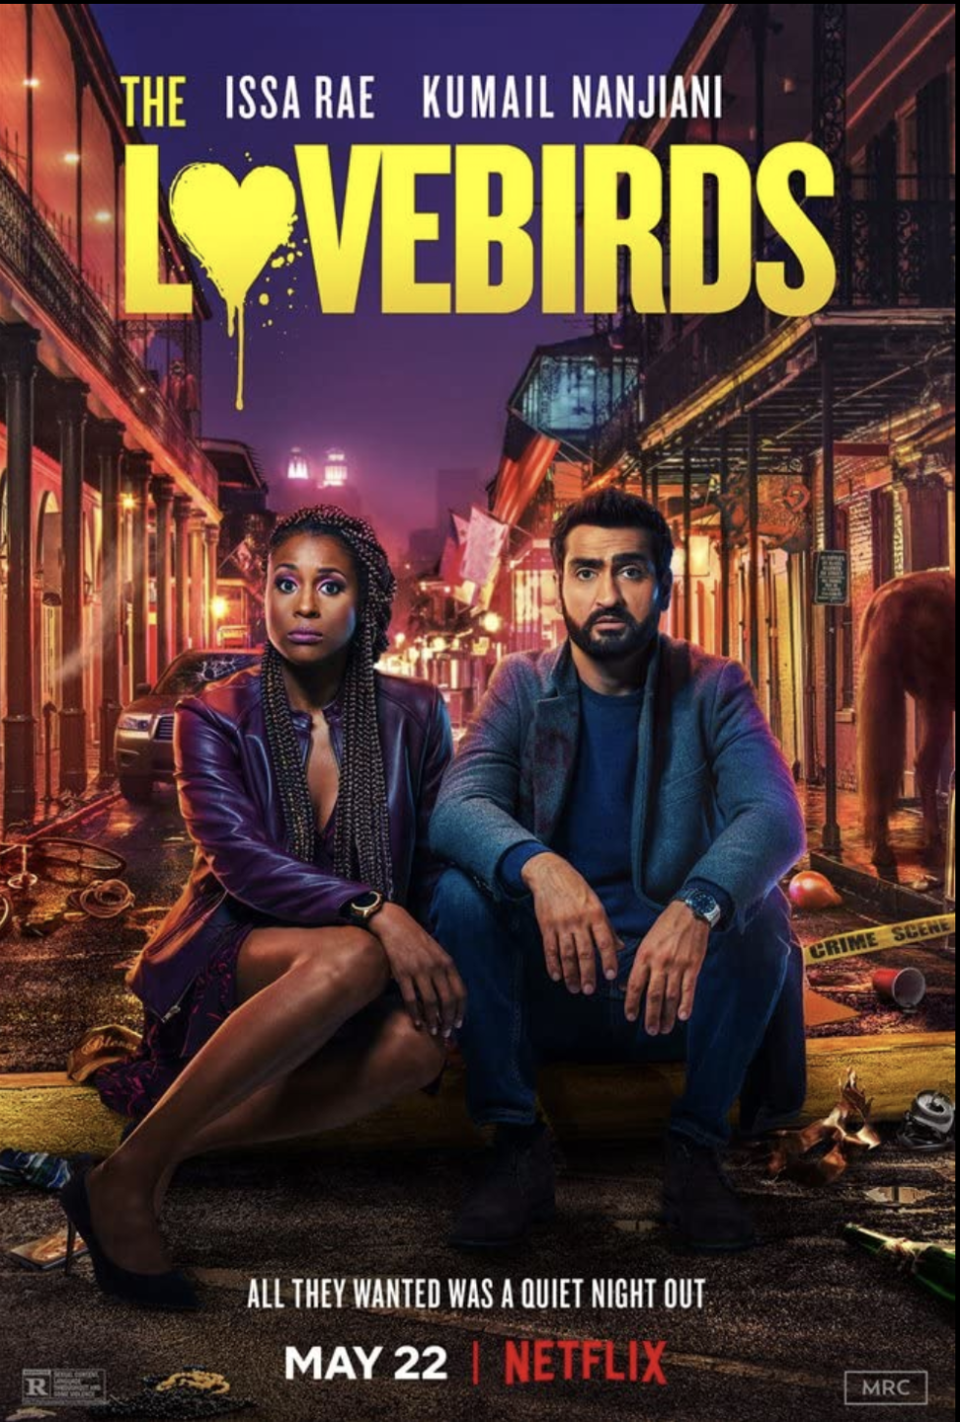 "<p>Kumail Nanjiani and Issa Rae play a couple who just want a nice date night, but they accidentally get embroiled in a murder mystery. This rom-com really leans on the comedy side of things, and is sure to make you laugh.</p><p><a class=""link rapid-noclick-resp"" href=""https://www.netflix.com/search?q=the+love&jbv=81248748"" rel=""nofollow noopener"" target=""_blank"" data-ylk=""slk:STREAM NOW"">STREAM NOW</a></p>"